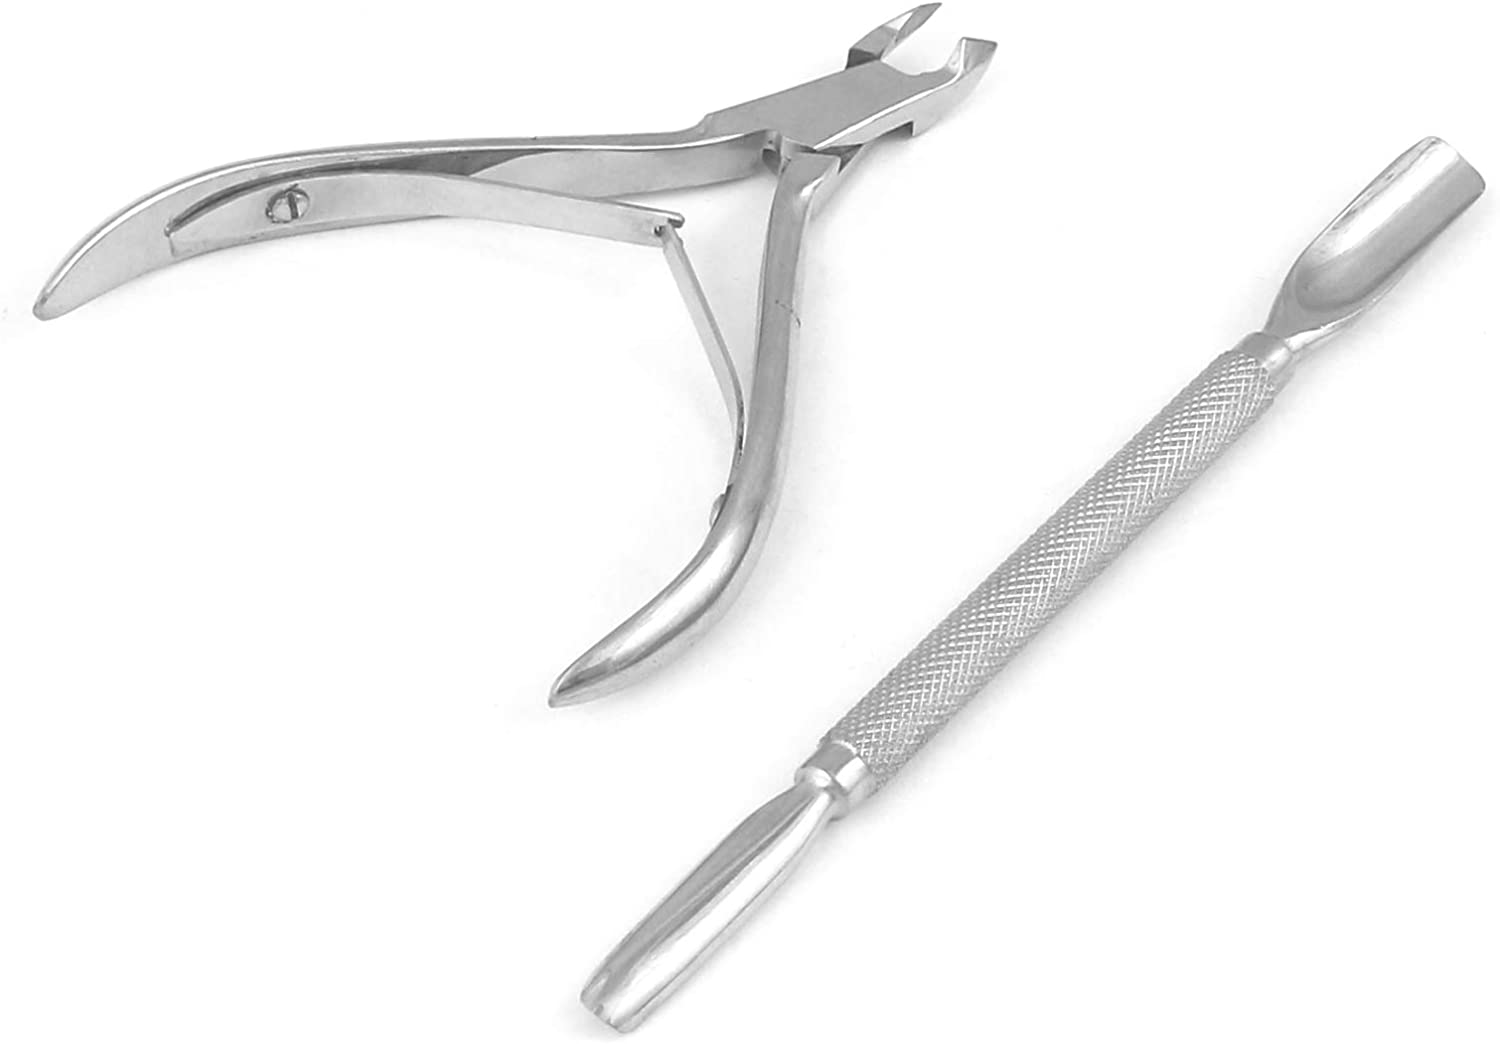 Large discharge sale G.S Professional Cuticle Clipper-Cuticle Direct store Nipper-Cuticle Remover